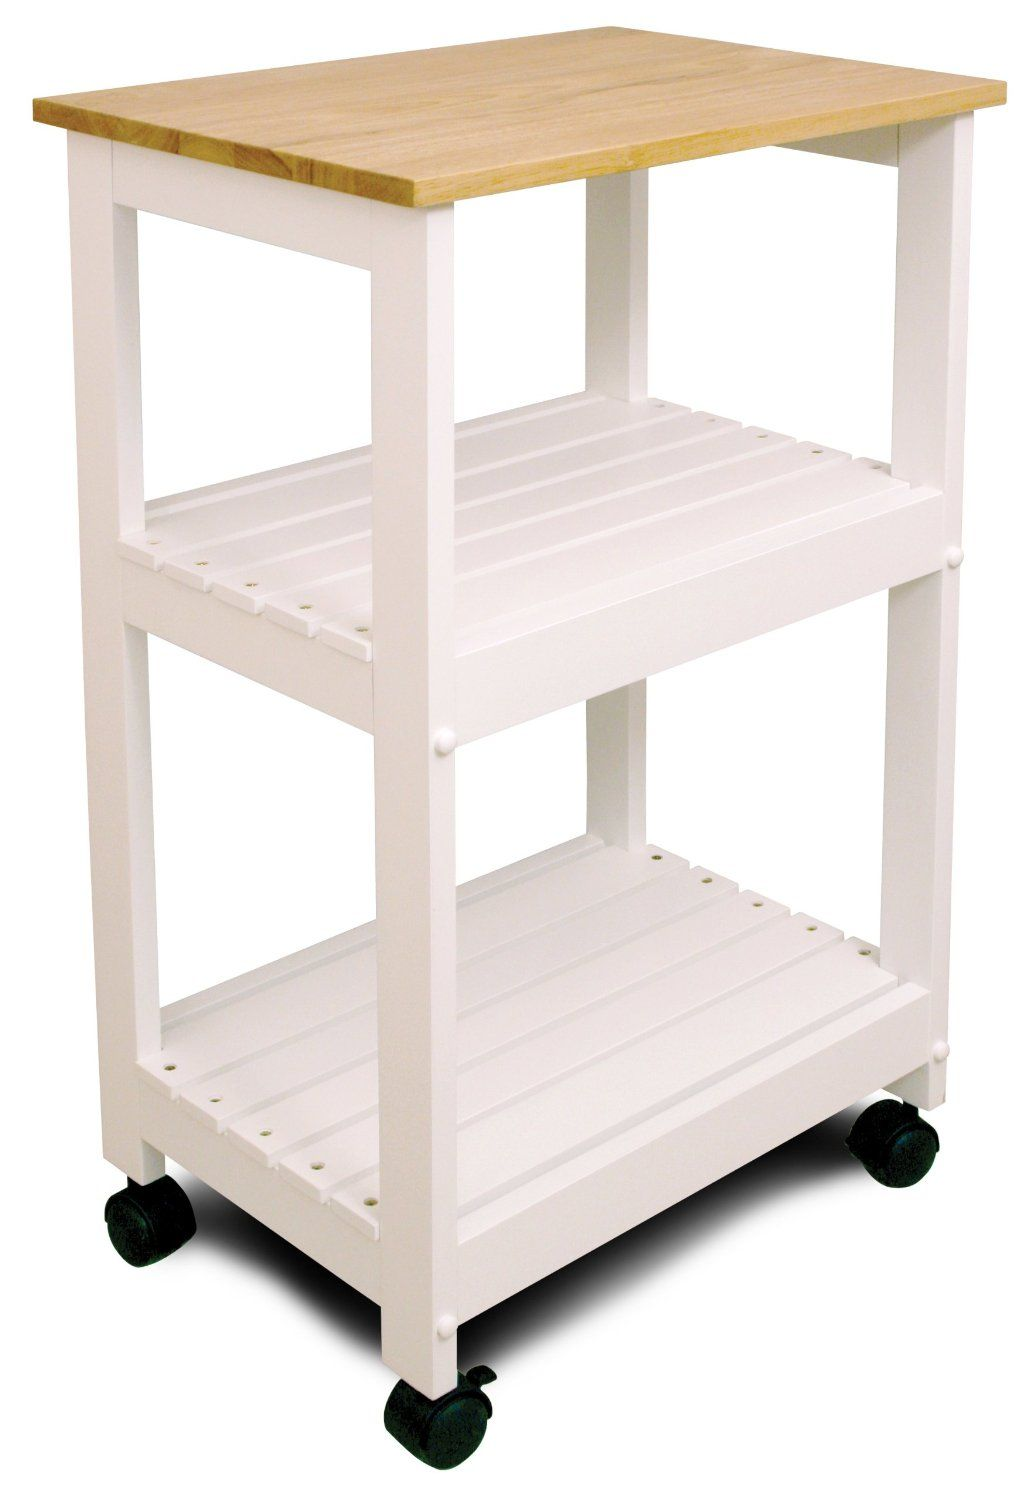 Amazon.com: Catskill Craftsmen Utility Kitchen Cart/Microwave Stand, White Base with Natural Top: Home & Kitchen